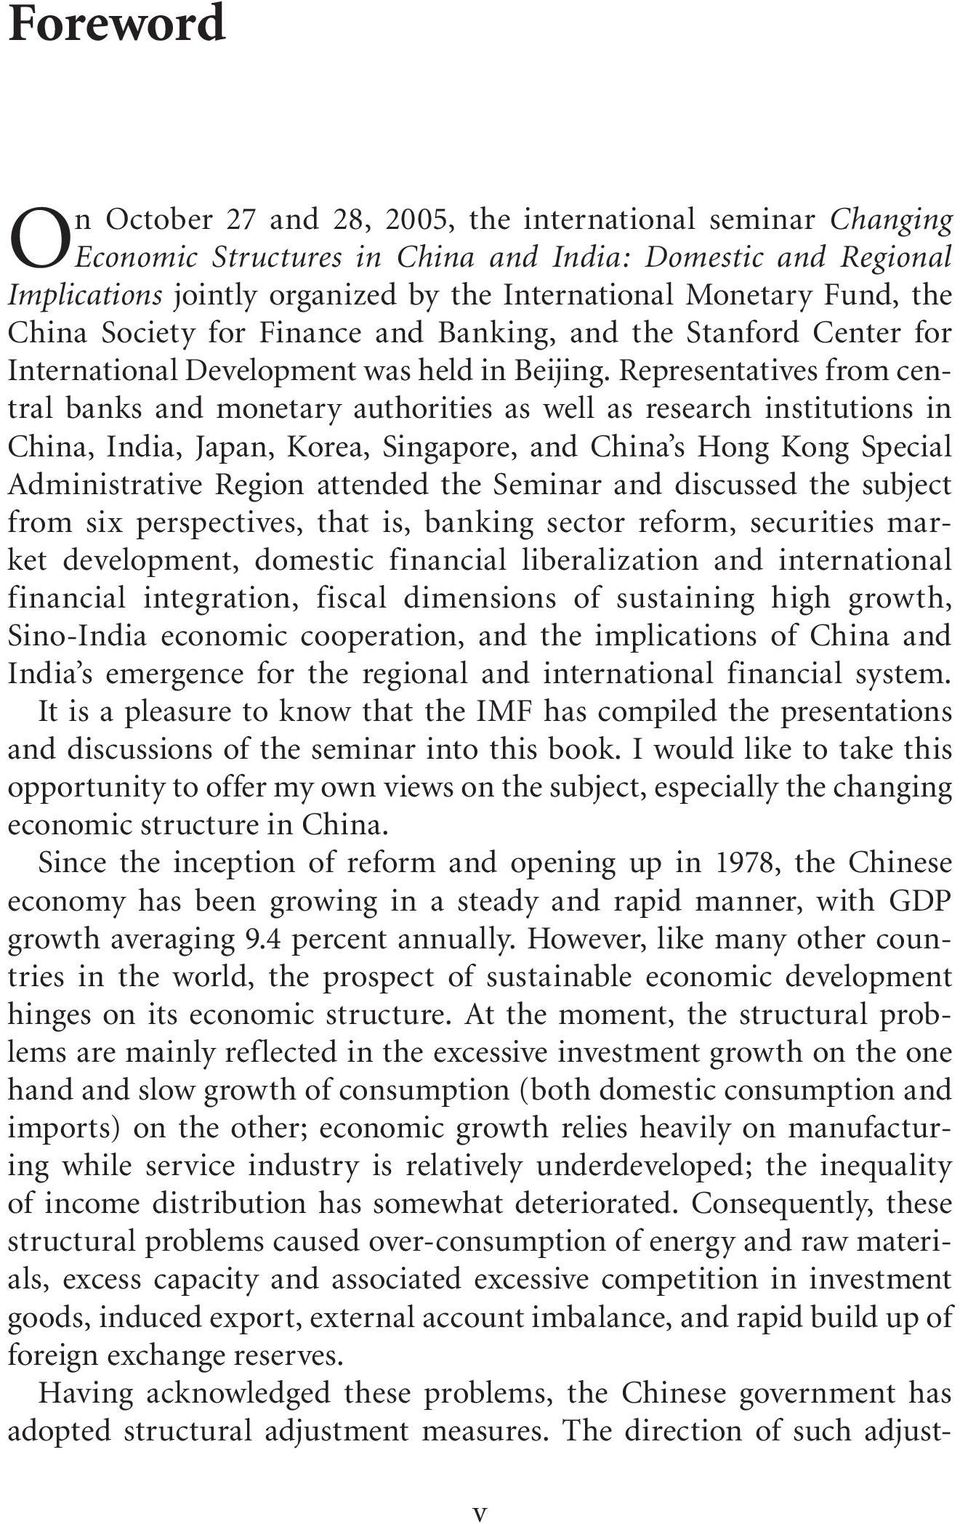 Representatives from central banks and monetary authorities as well as research institutions in China, India, Japan, Korea, Singapore, and China s Hong Kong Special Administrative Region attended the